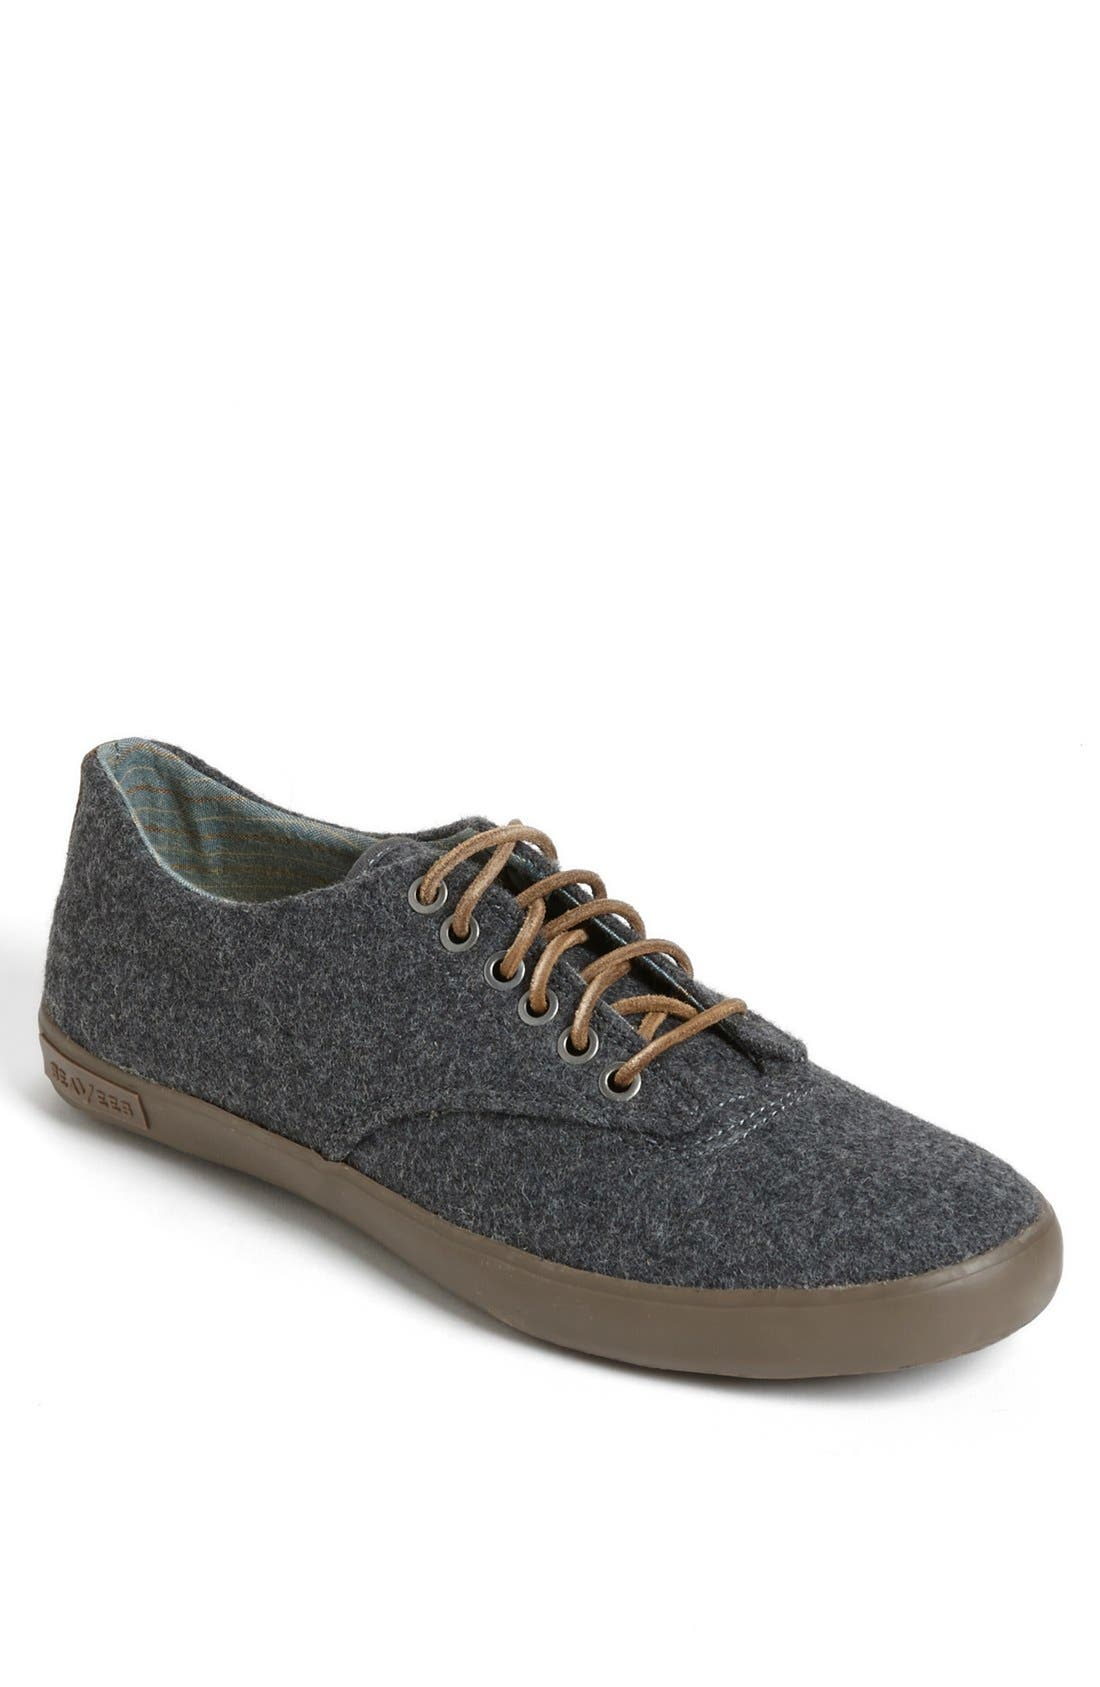 Main Image - SeaVees 'Hermosa Plimsoll Surplus' Boiled Wool Sneaker